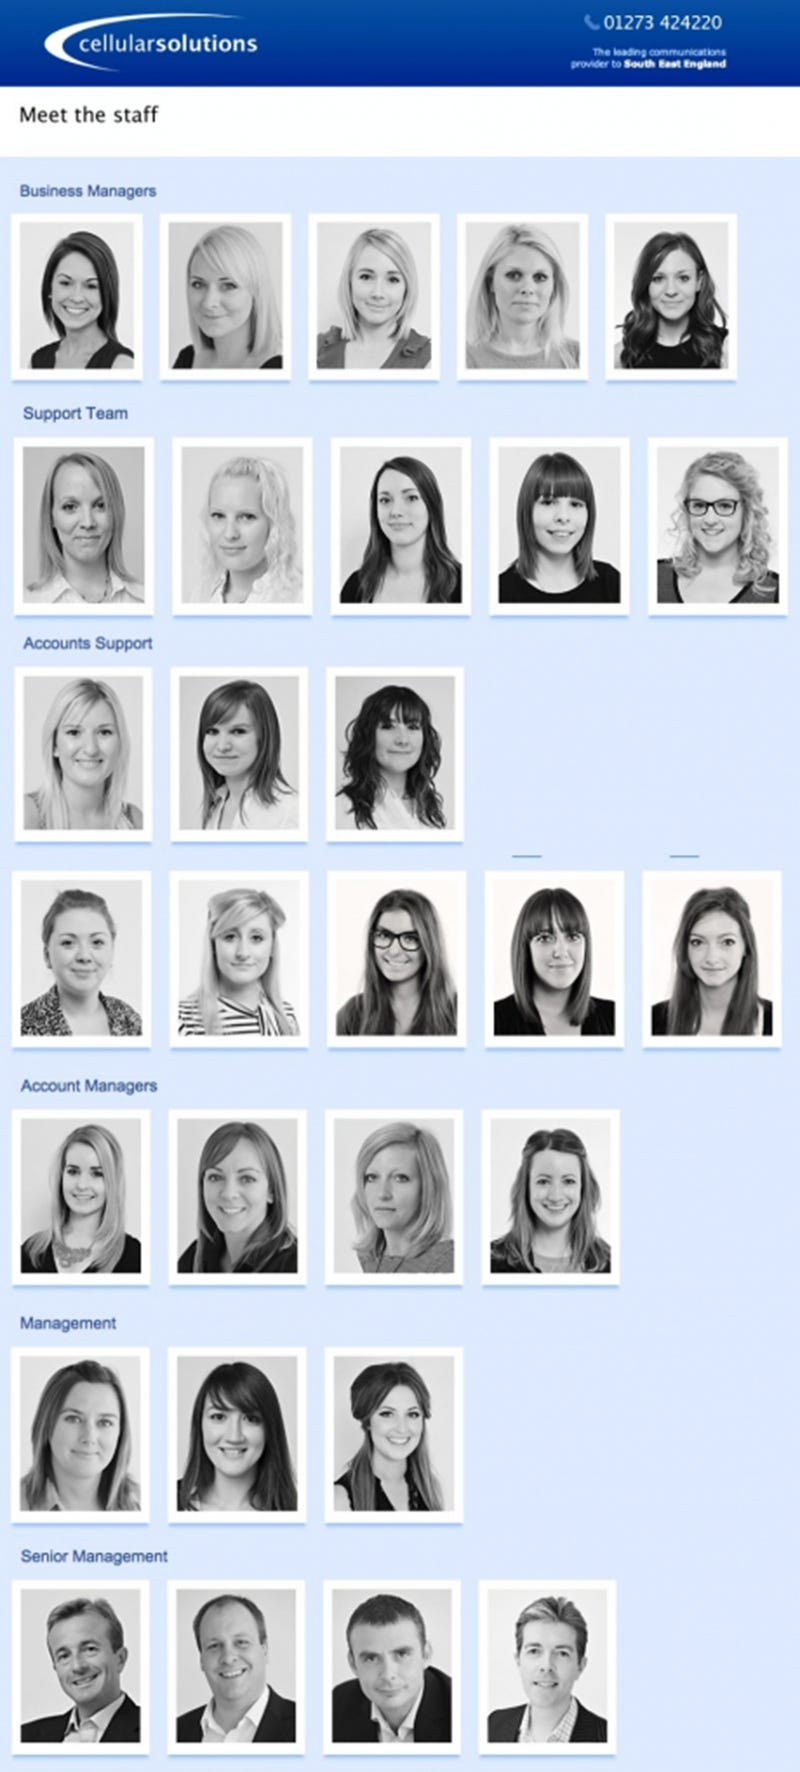 Guess Who Does the Hiring at This Company (Hint: It's Not Women)